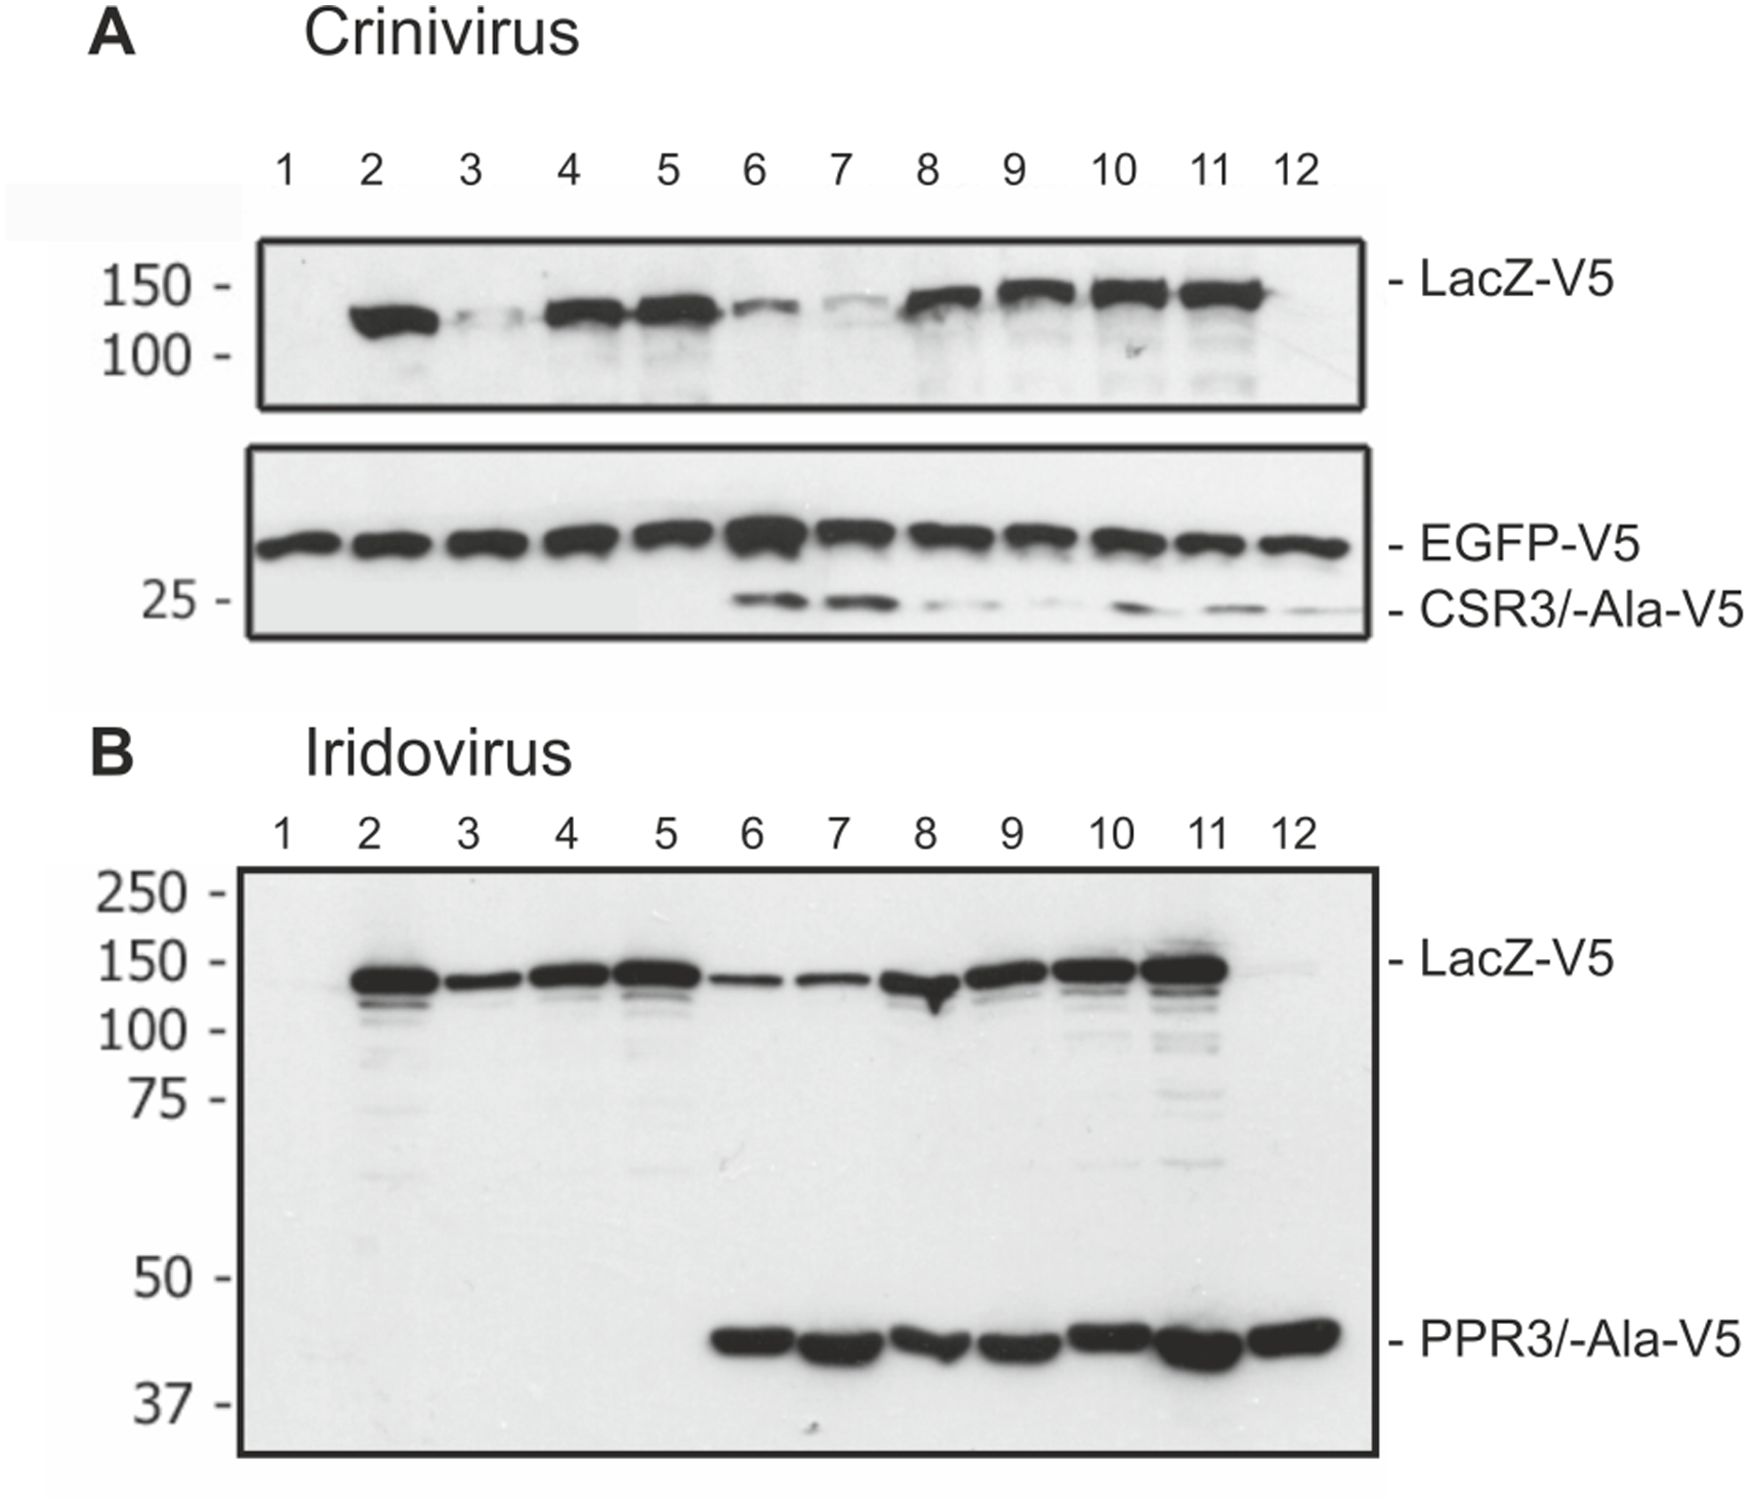 Immunoblot analysis of proteins in <i>Drosophila melanogaster</i> S2 cells transfected to co-express LacZ and viral RNase III proteins.